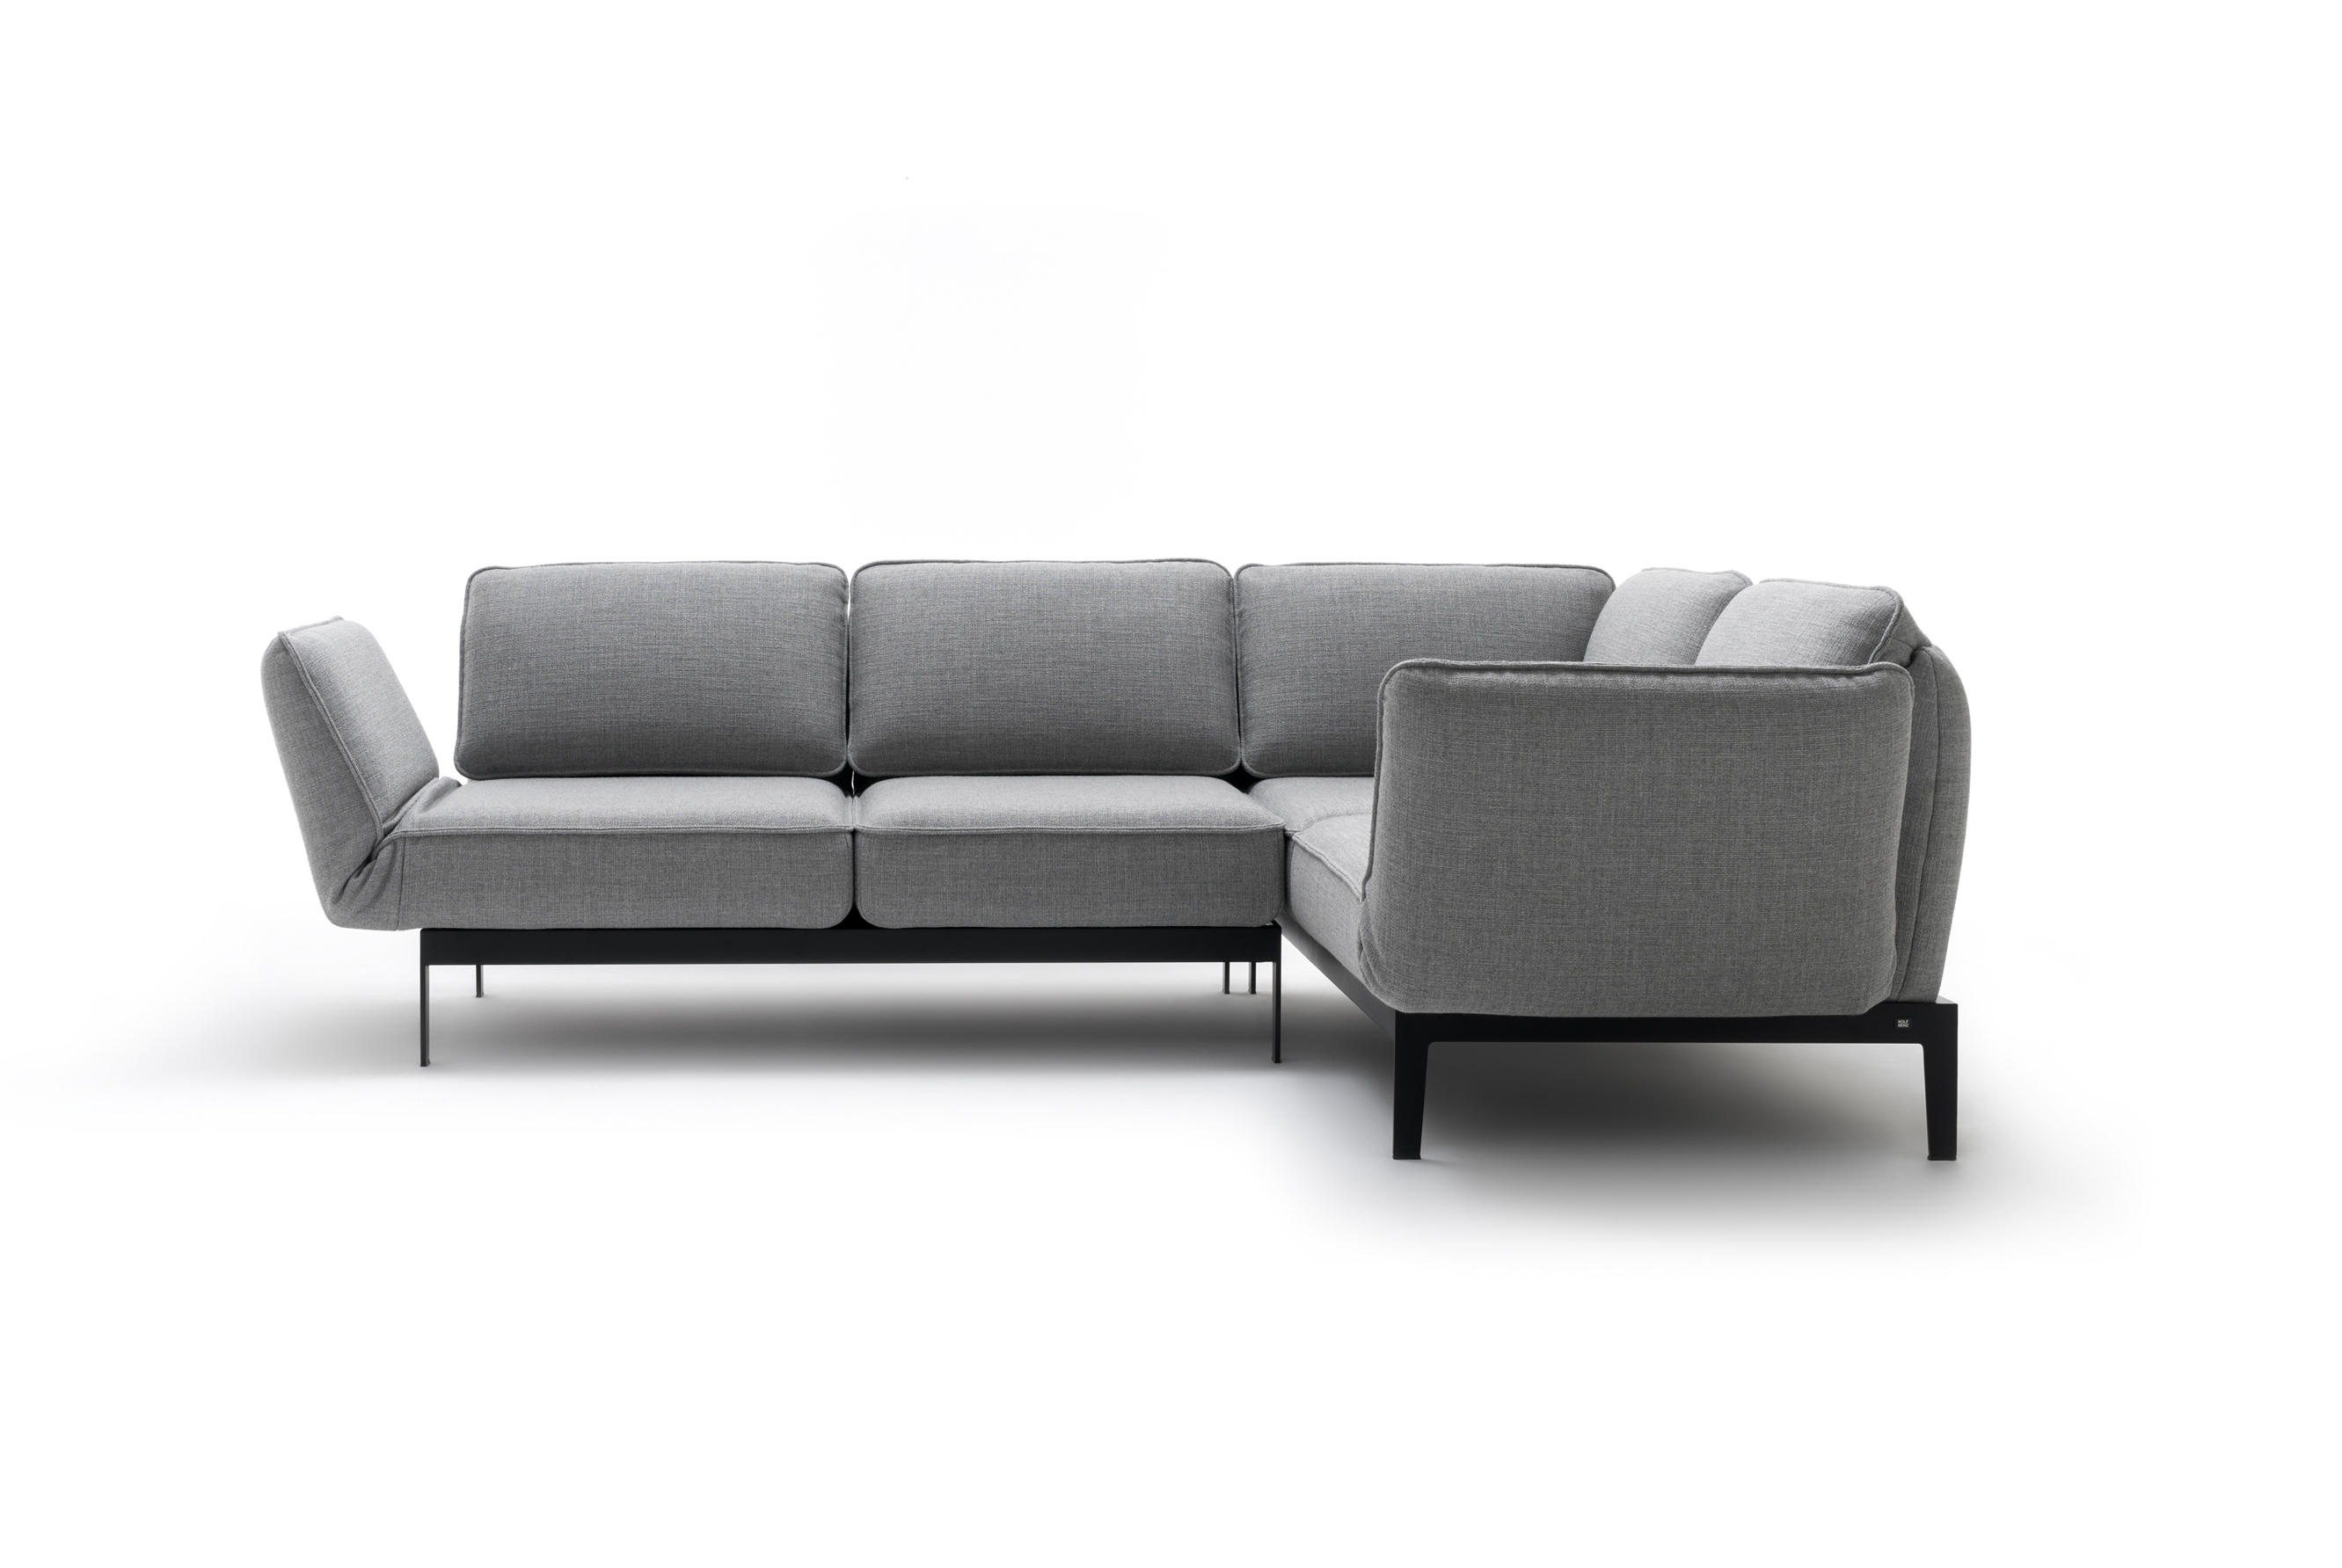 Rolf Benz 386 Mera Sofas From Rolf Benz Architonic